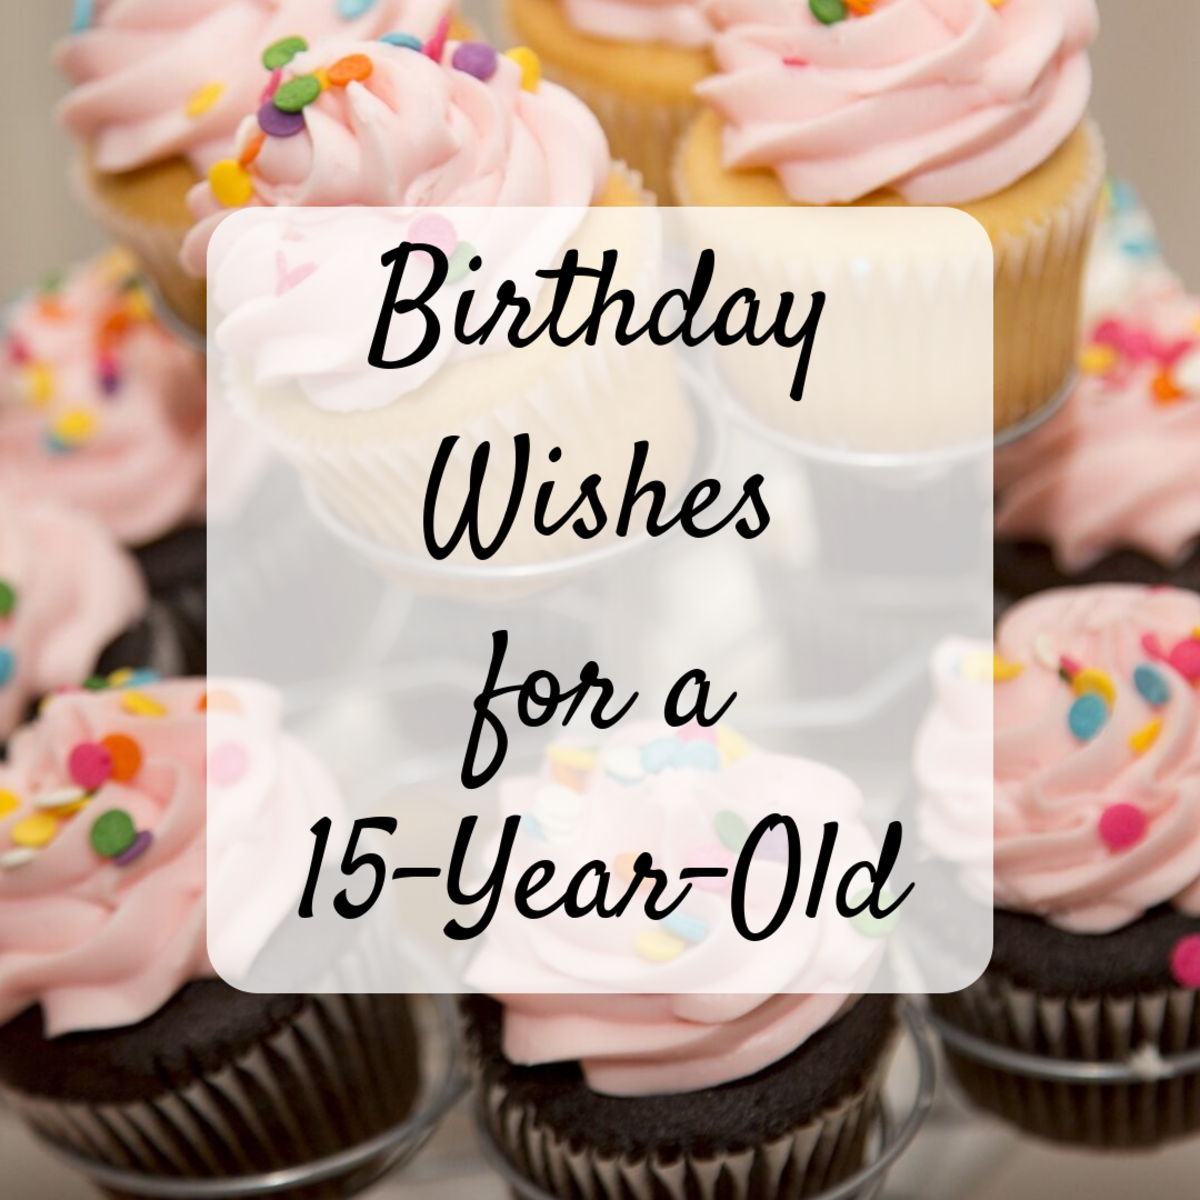 Happy 15th Birthday: Wishes, Messages, and Quotes for a 15-Year-Old